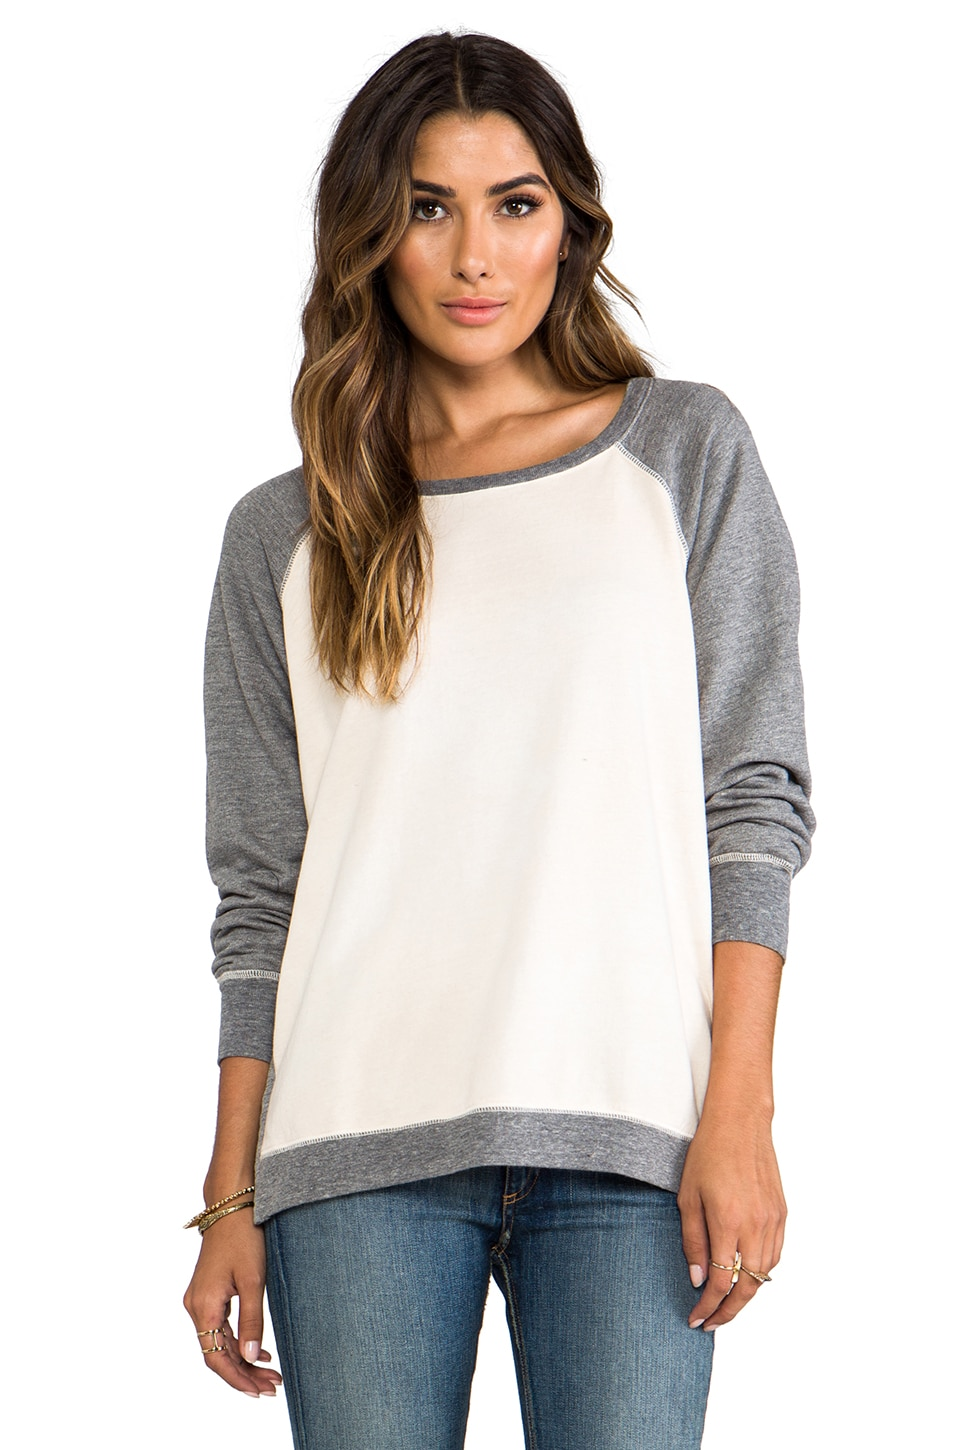 Saint Grace Cotton Fleece Ansel Contrast Sweatshirt in Swiss